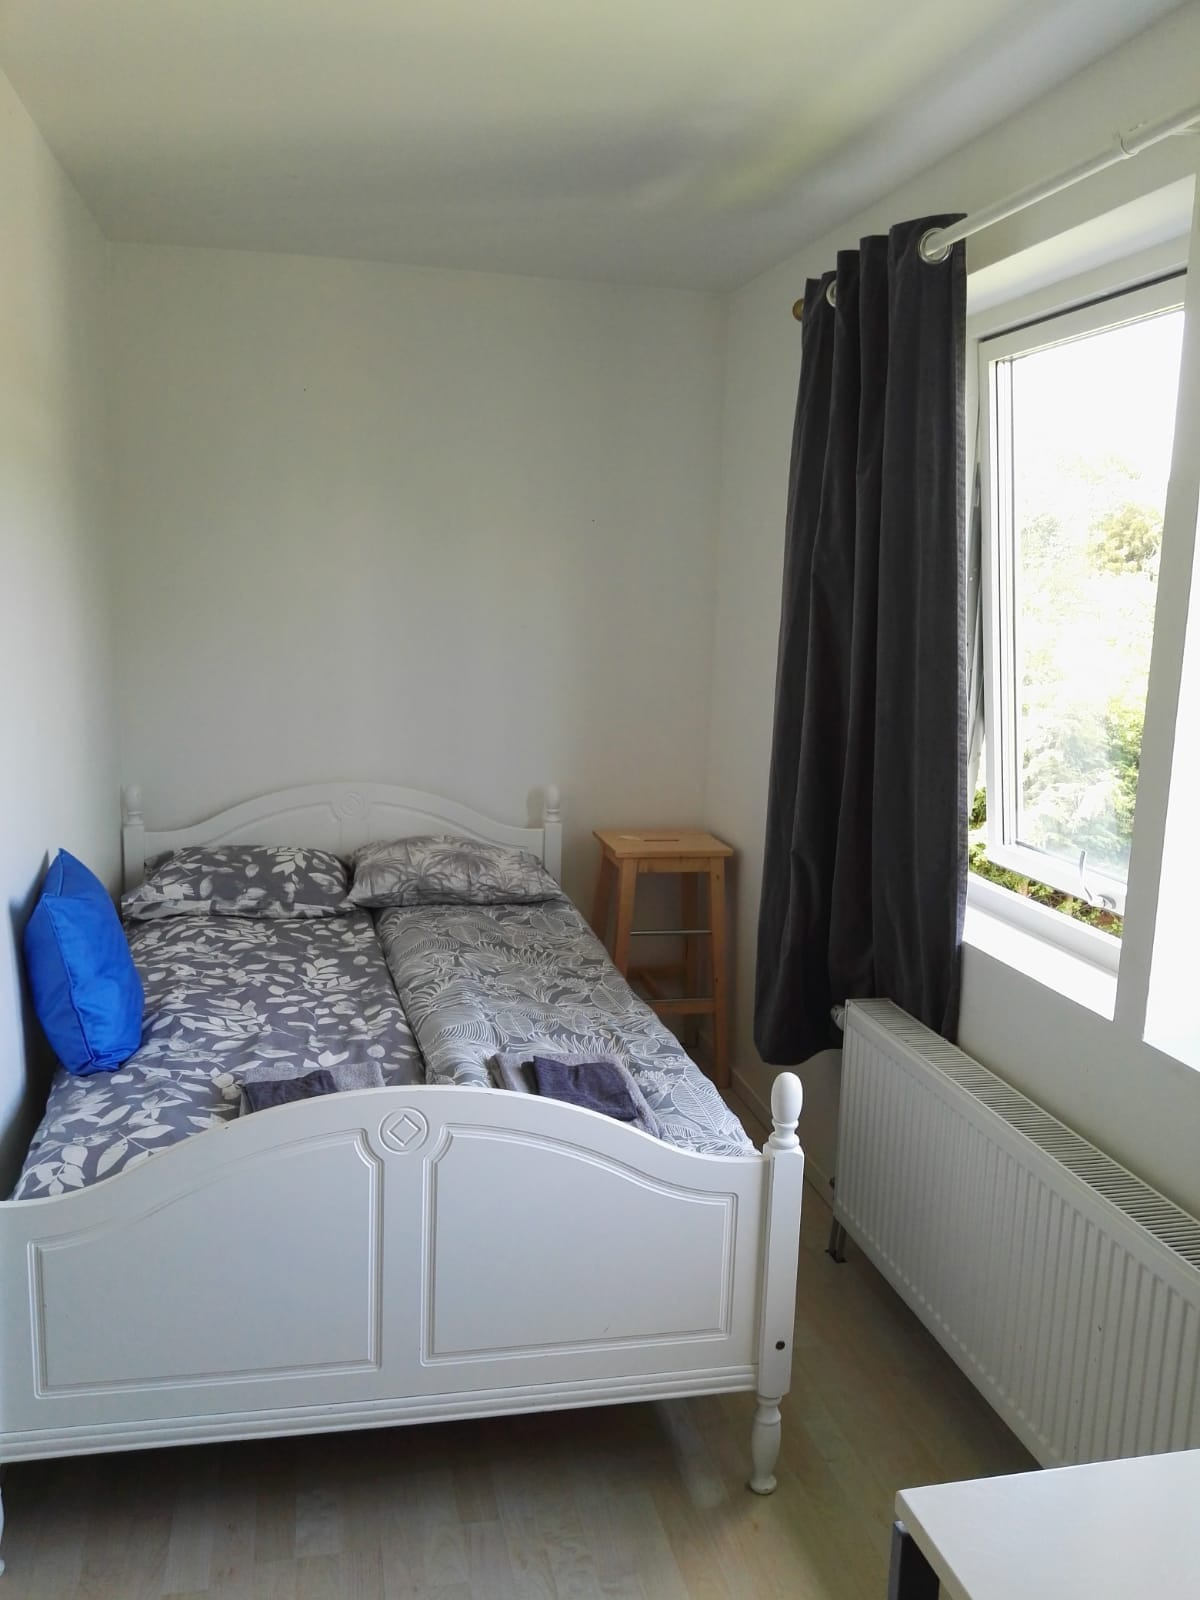 4) Private room in shared house in Lund